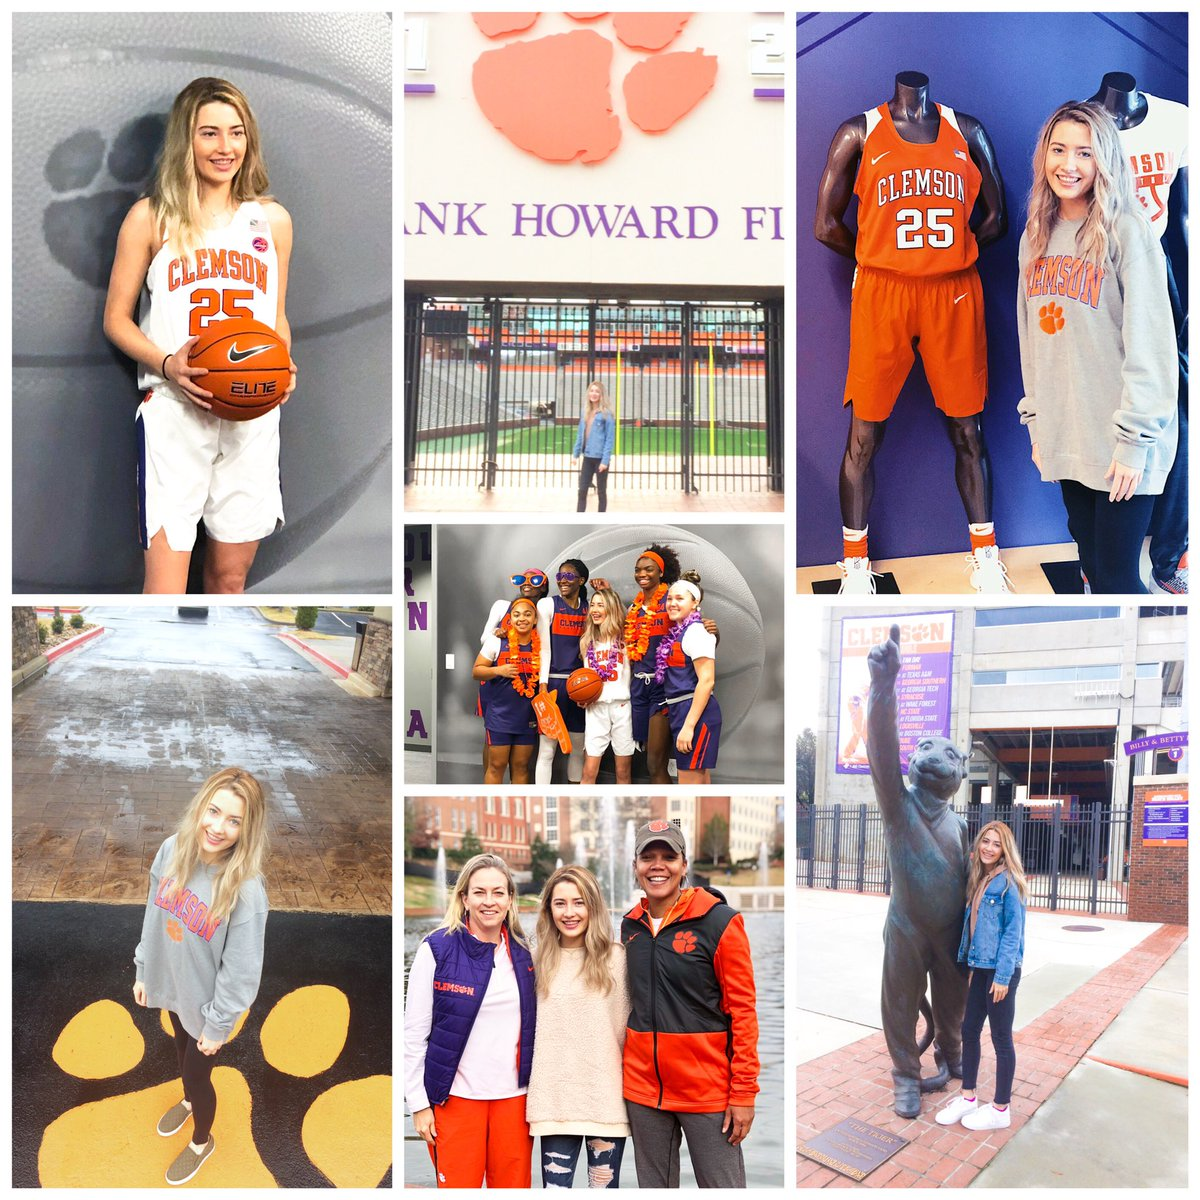 Congrats to Sydney Standifer for her verbal commit to Clemson to play basketball! #txhshoops #Clemson @ClemsonTigers